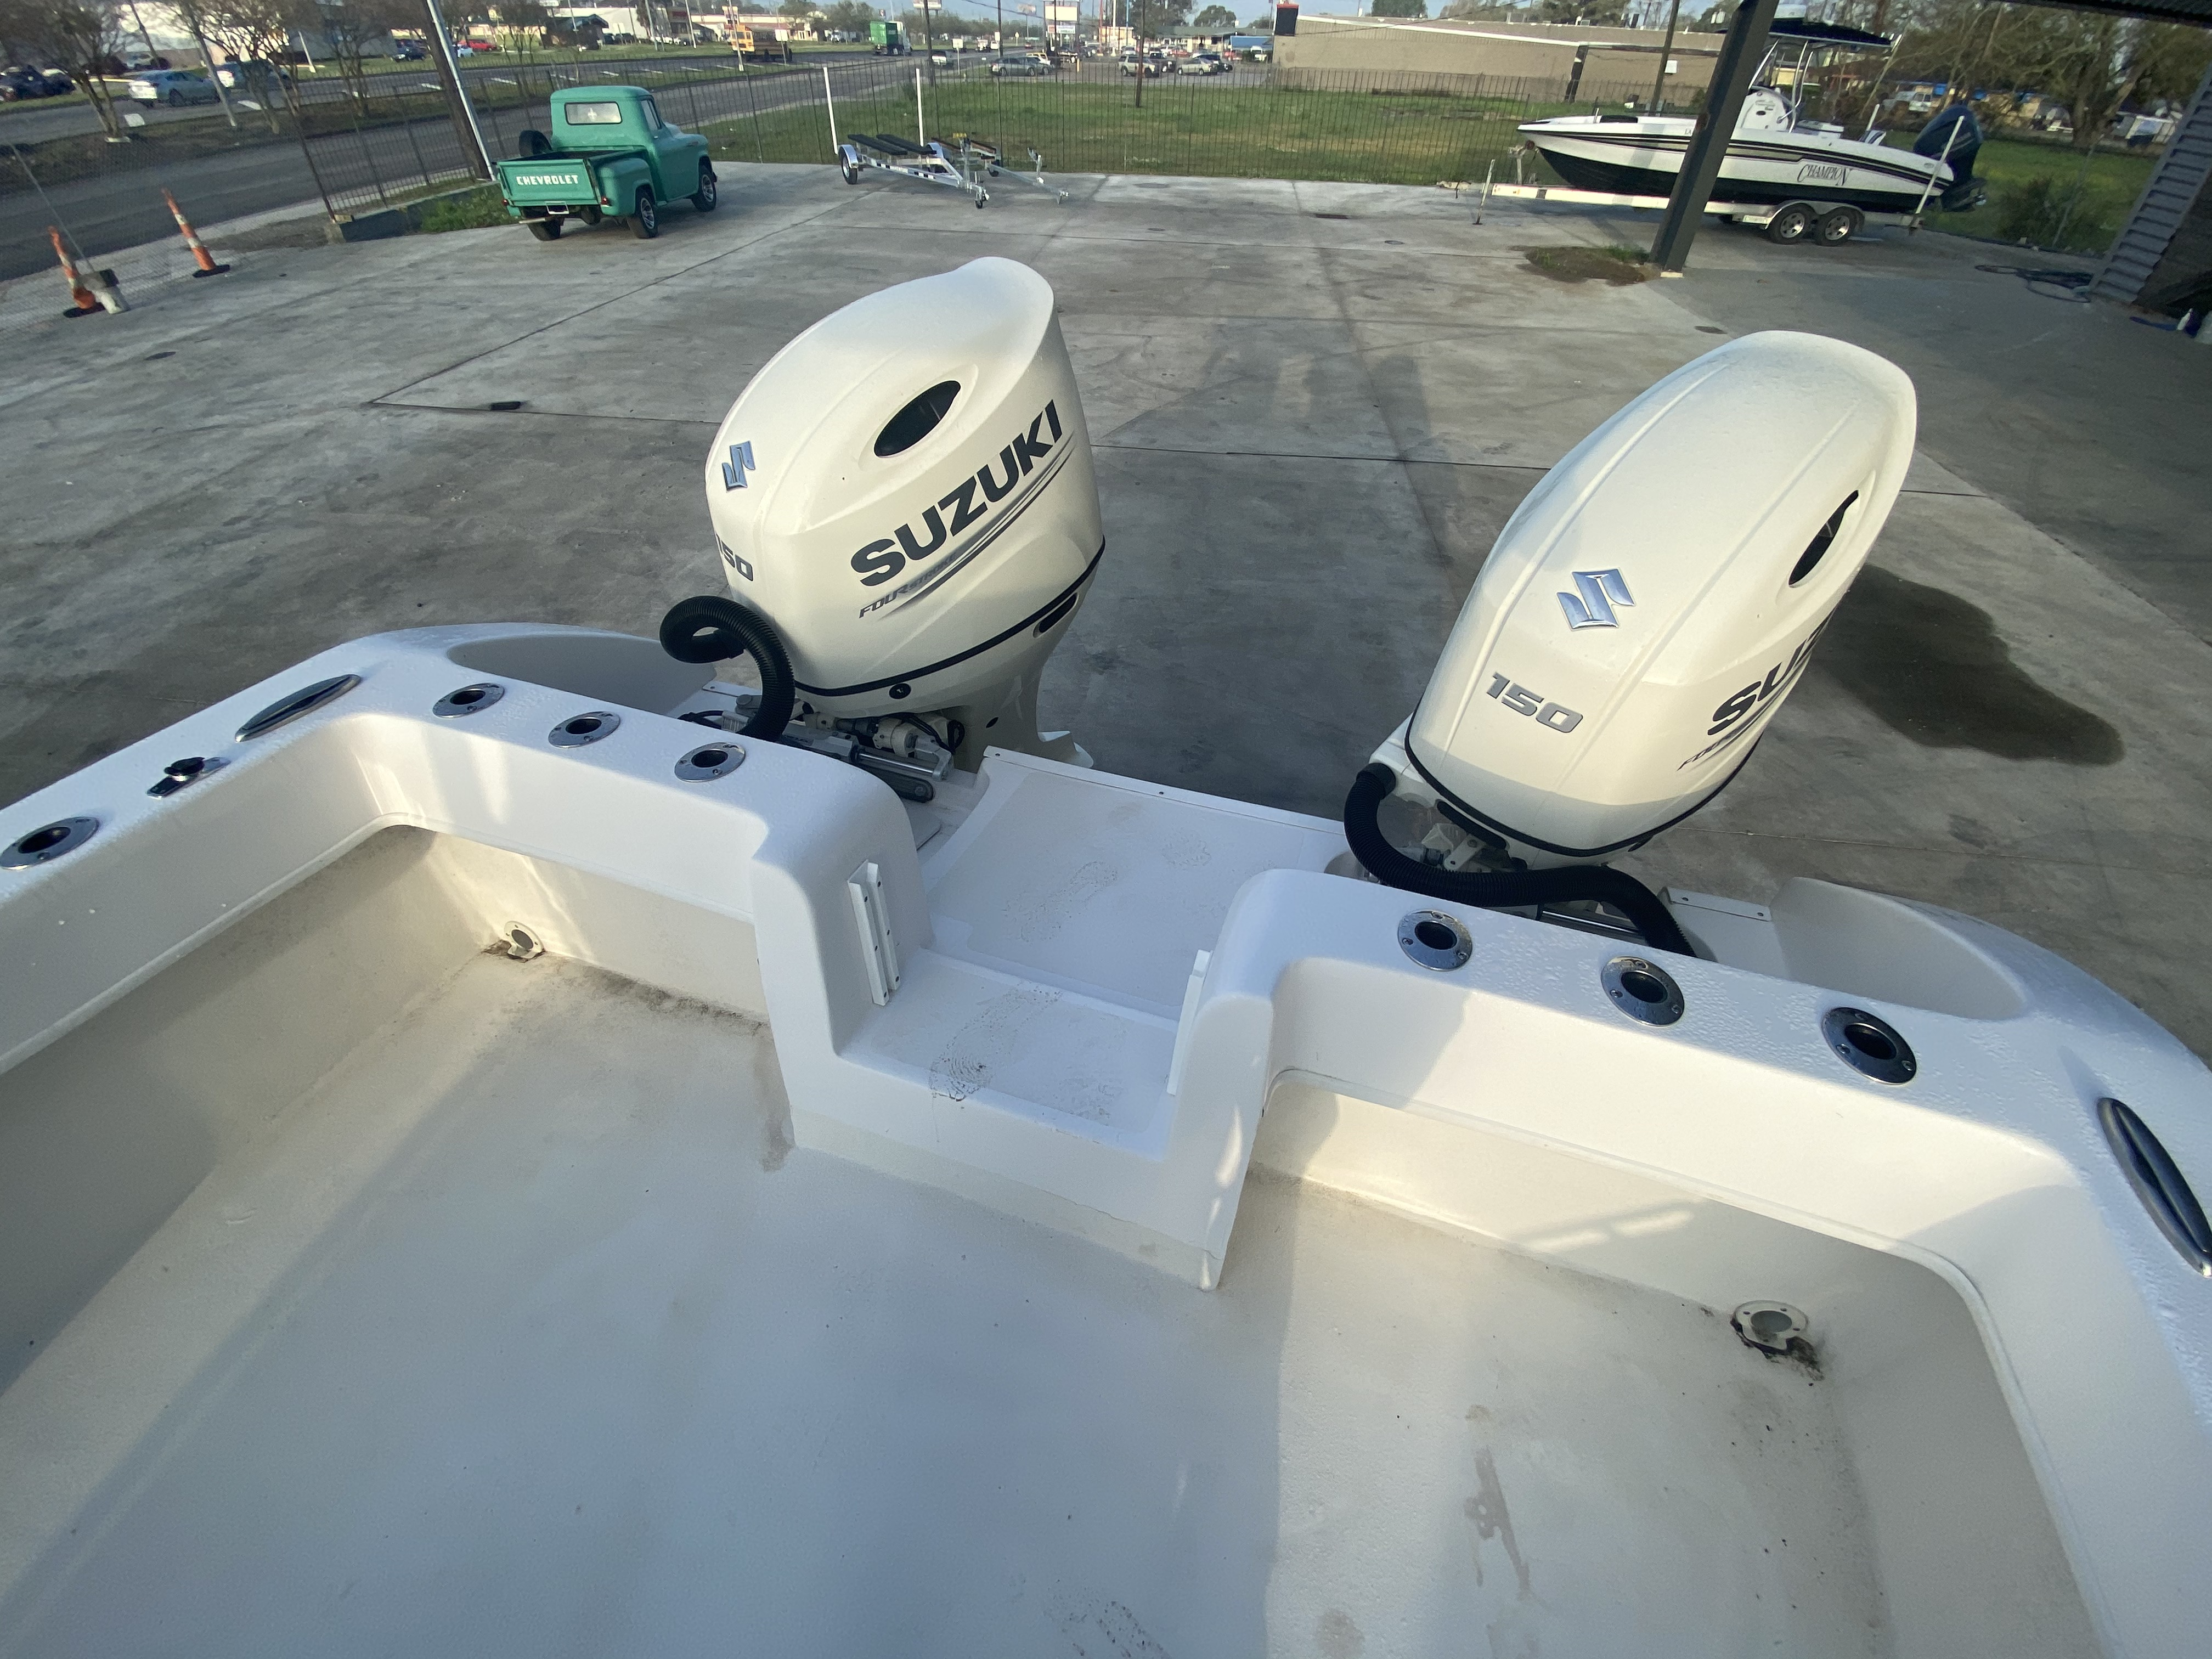 2020 Twin Vee boat for sale, model of the boat is 26 Pro & Image # 8 of 24